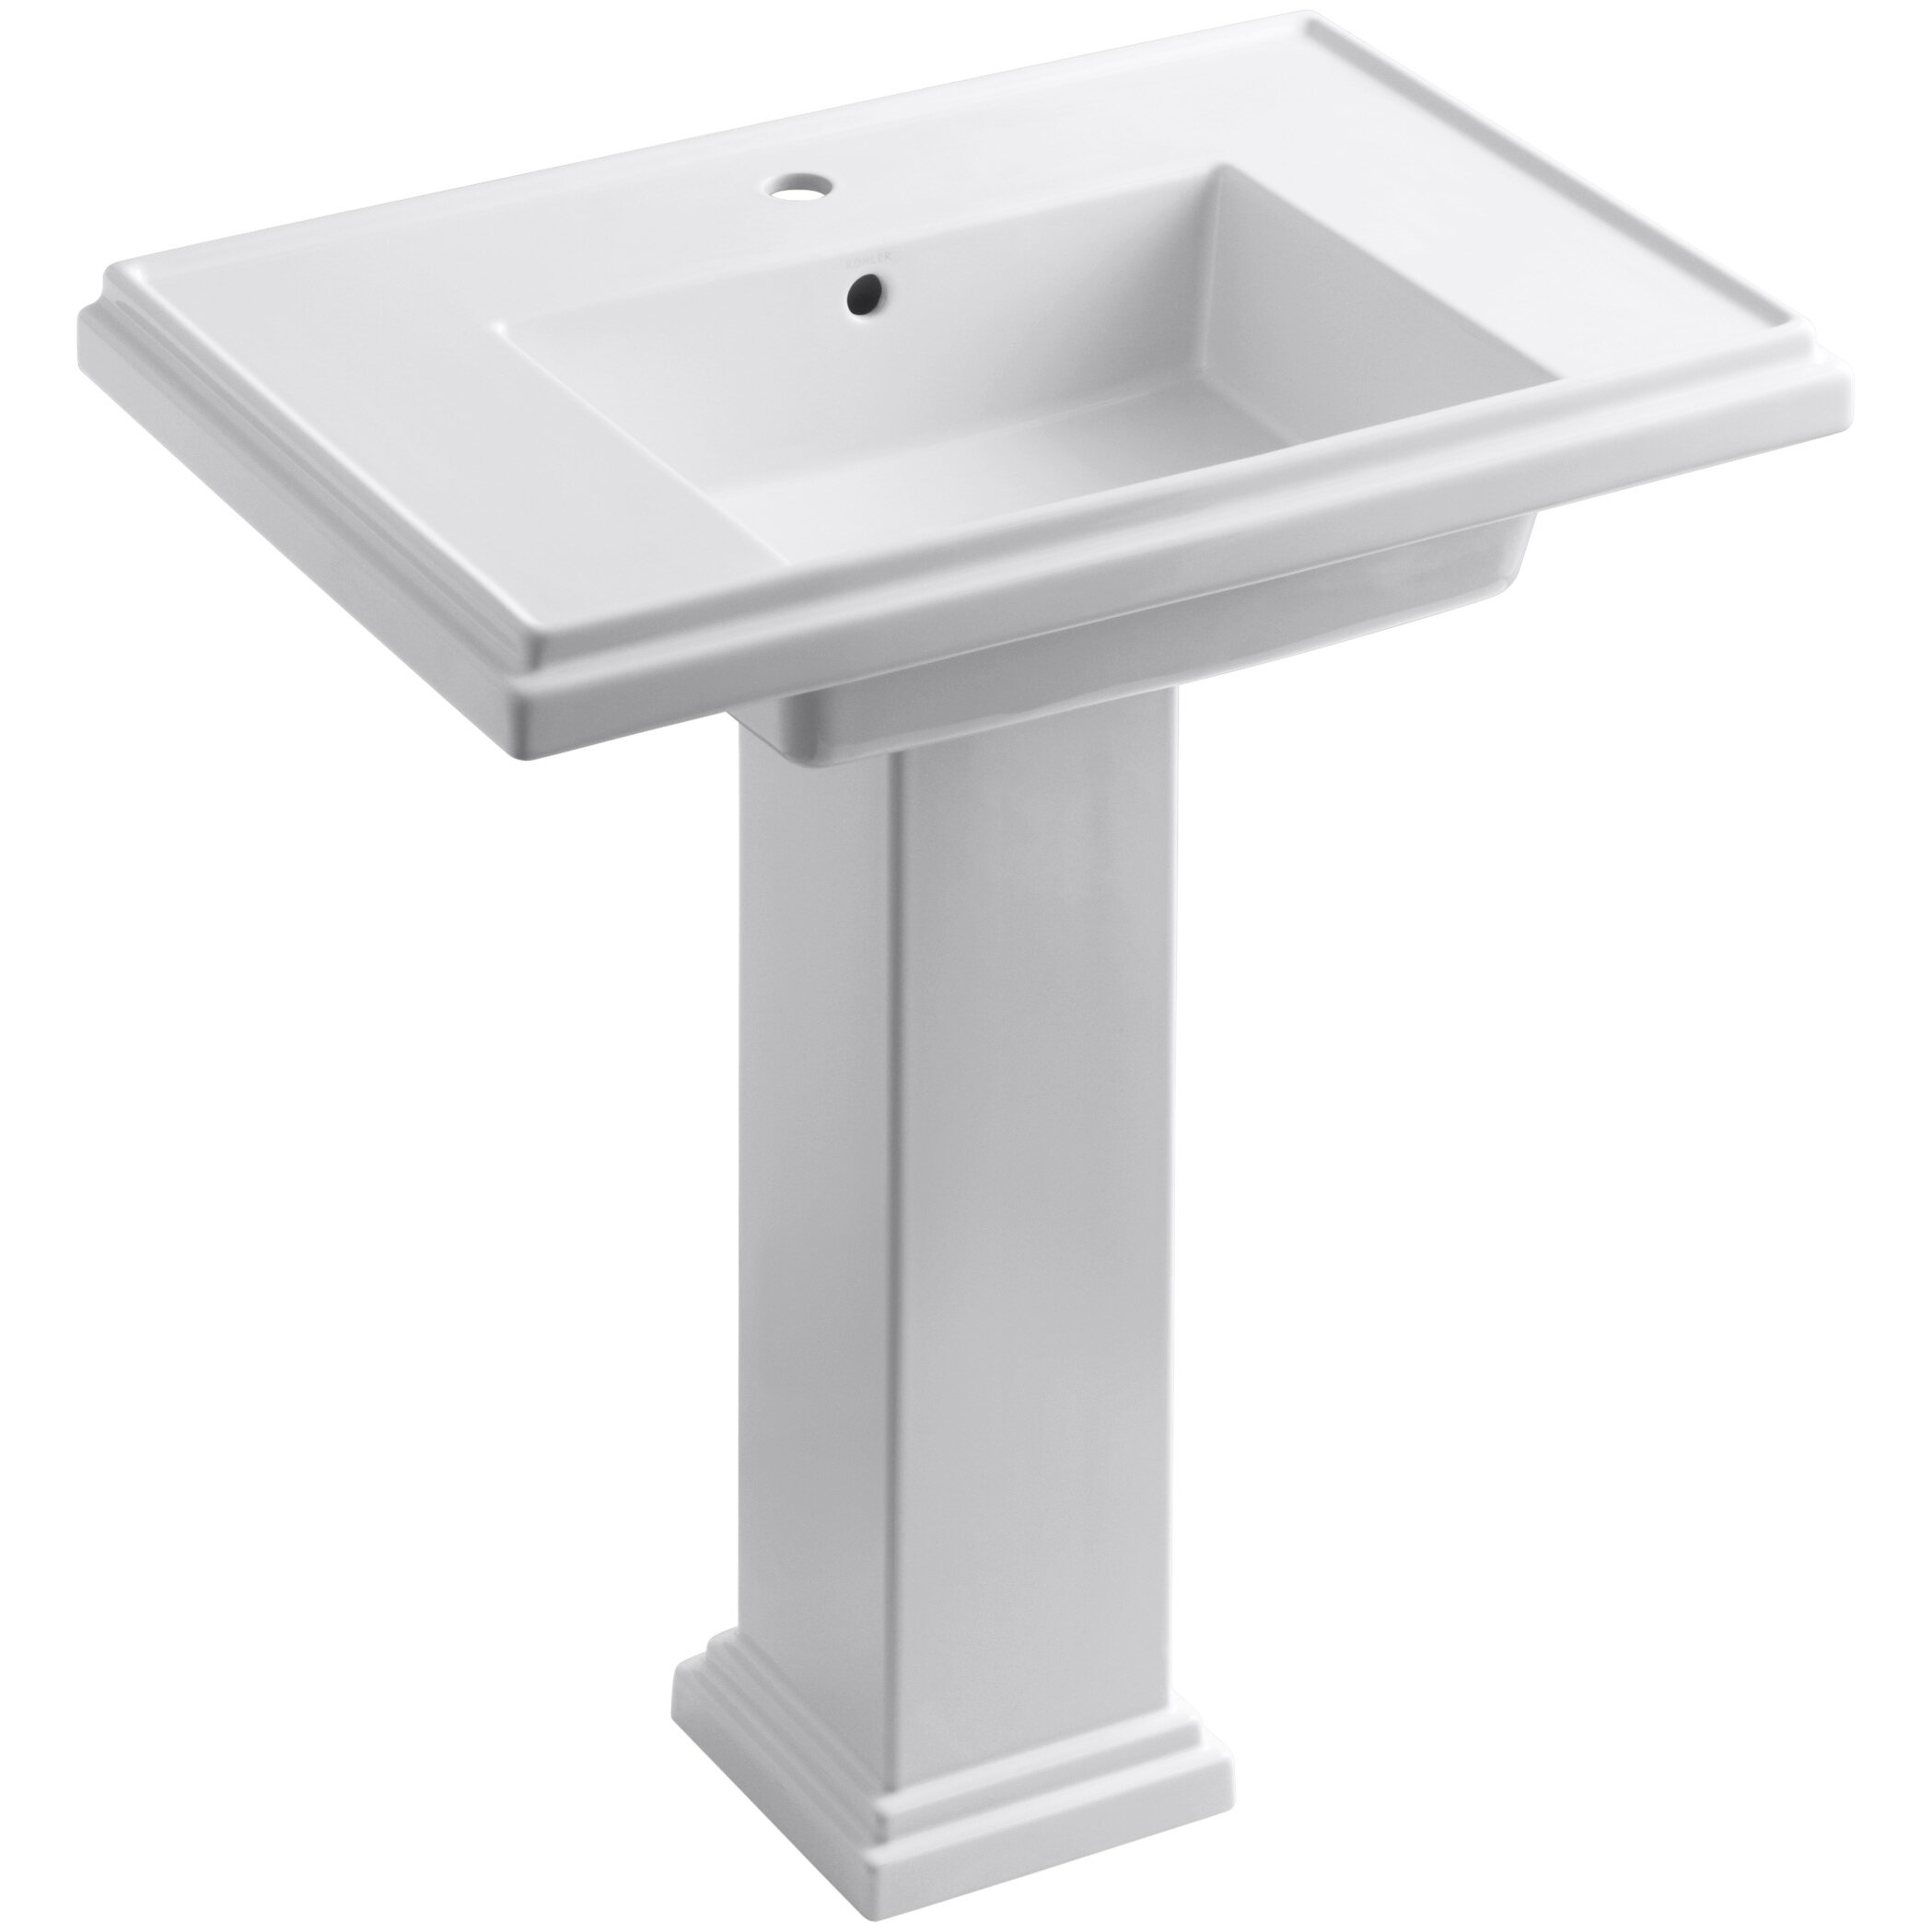 kohler sinks bathroom kohler tresham 30 quot pedestal bathroom sink amp reviews wayfair 13390